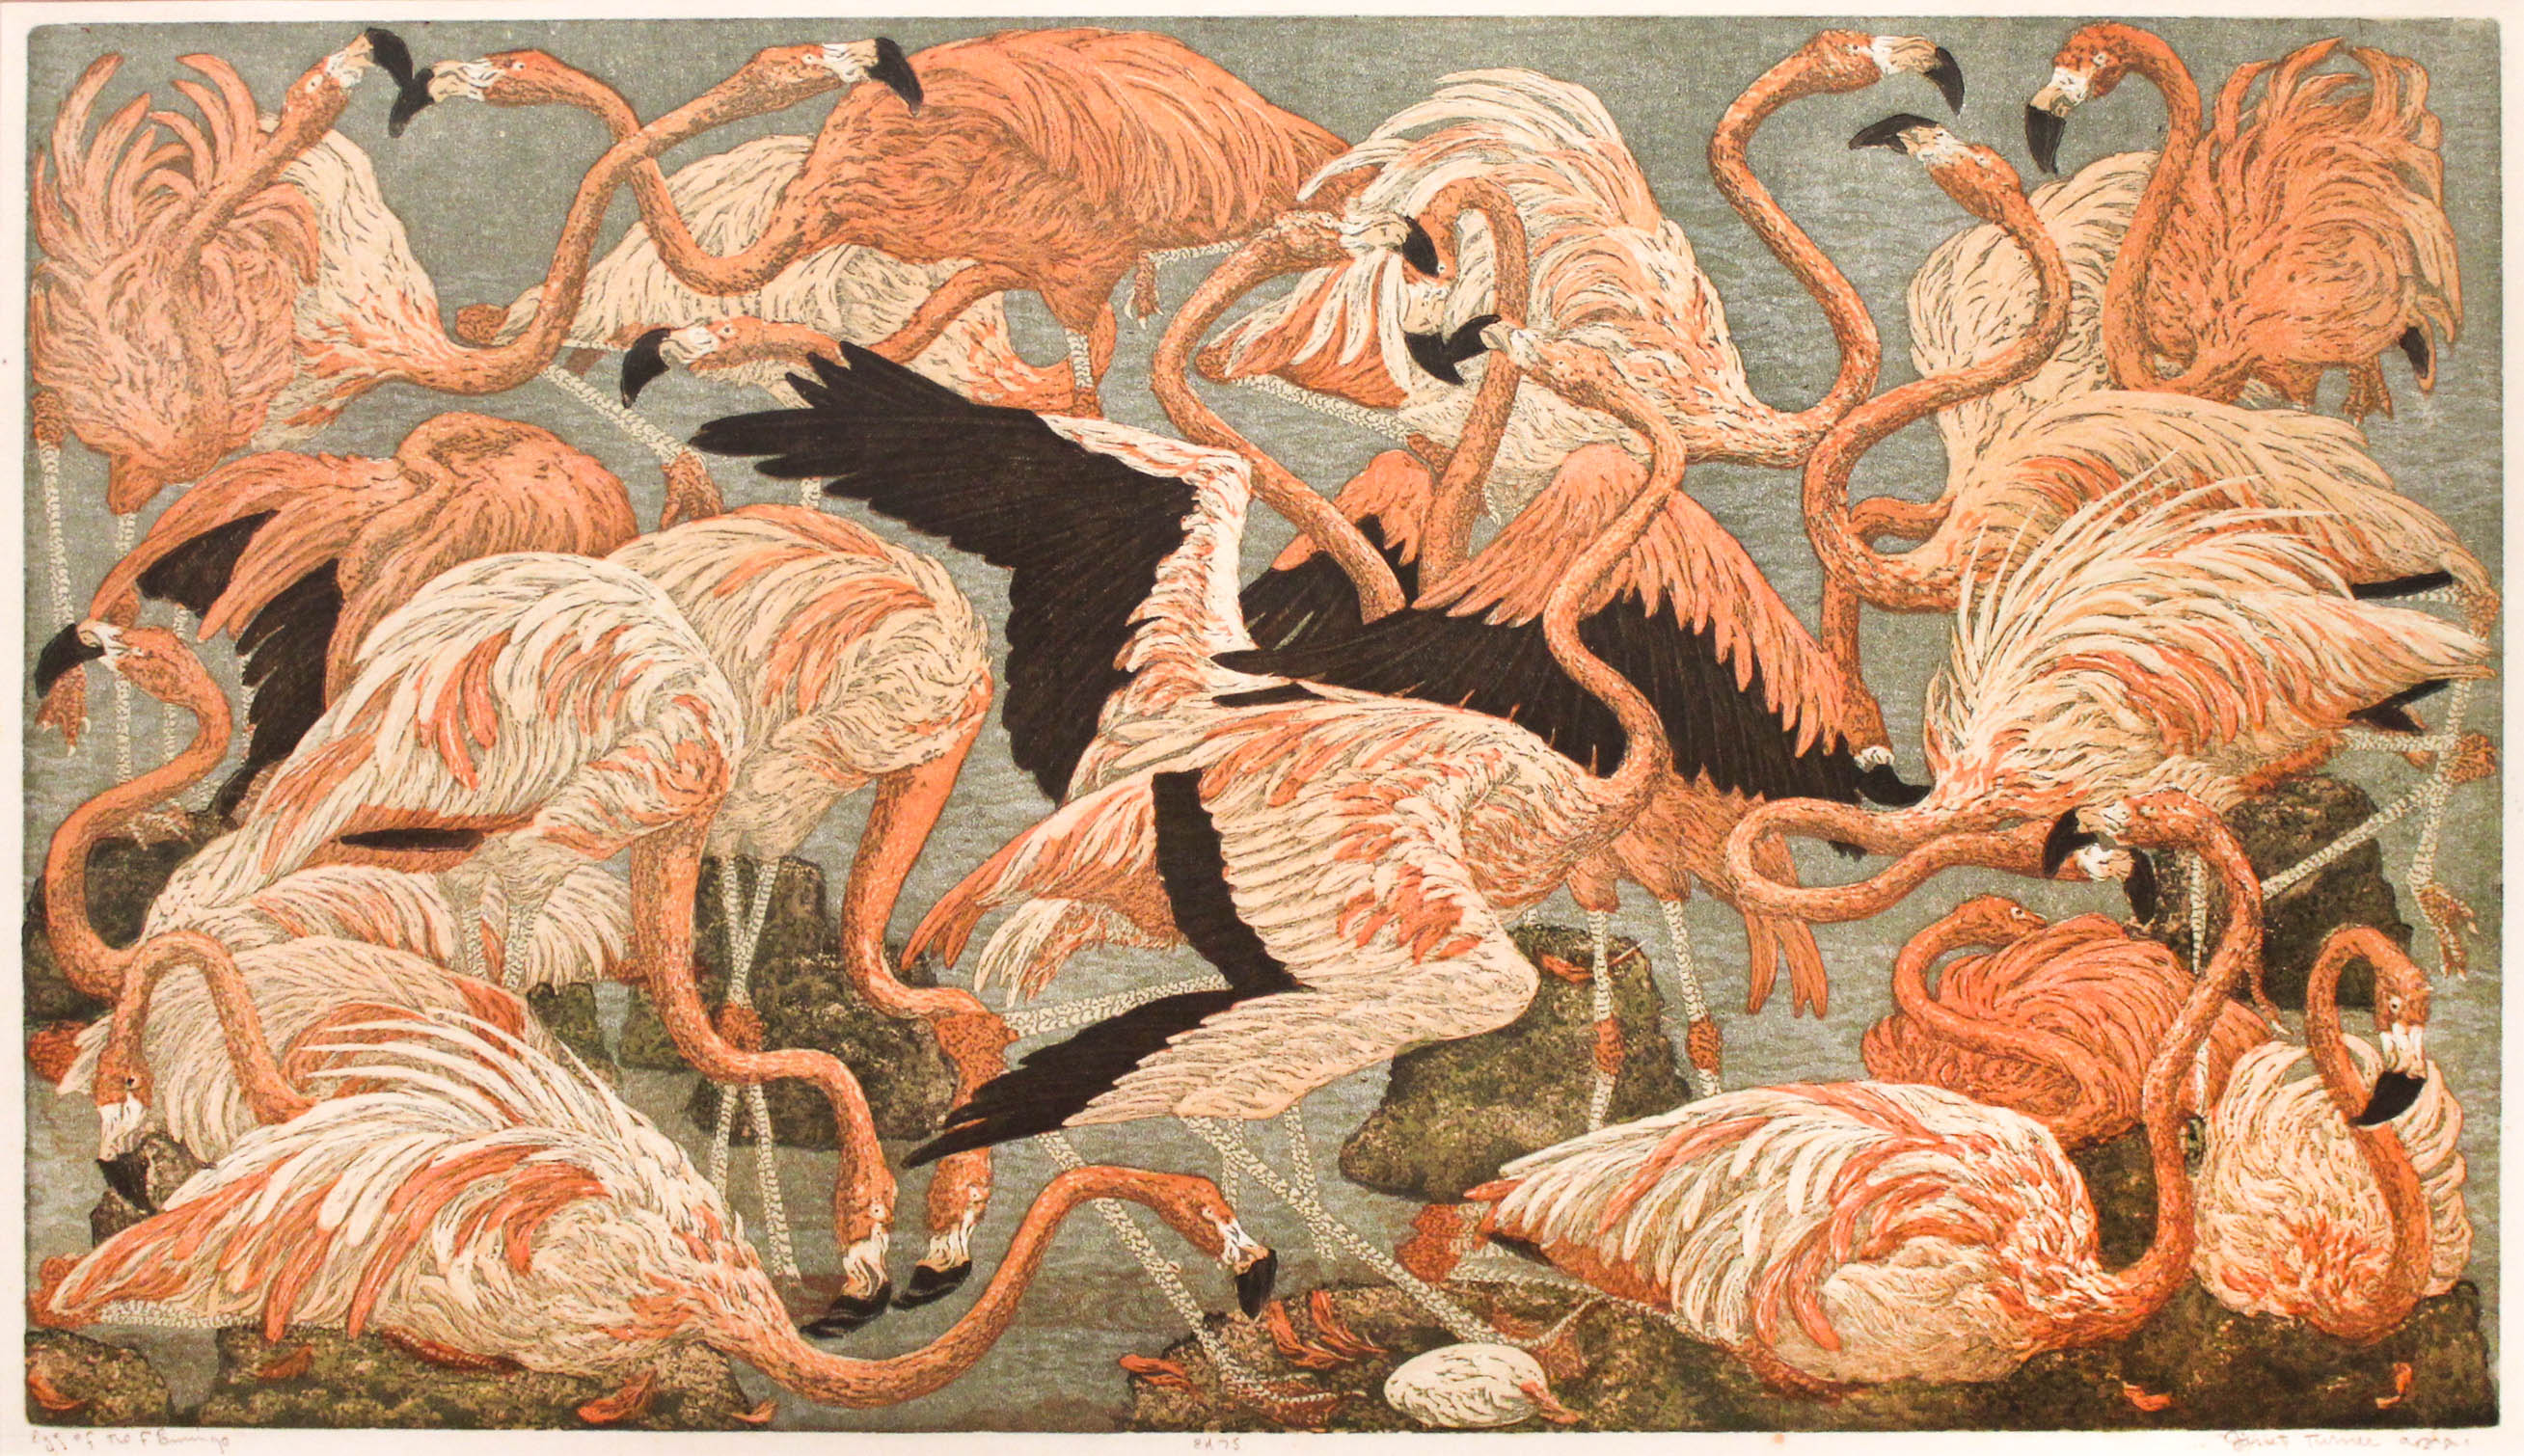 Janet Turner, Egg of the Flamingo, 1953, 